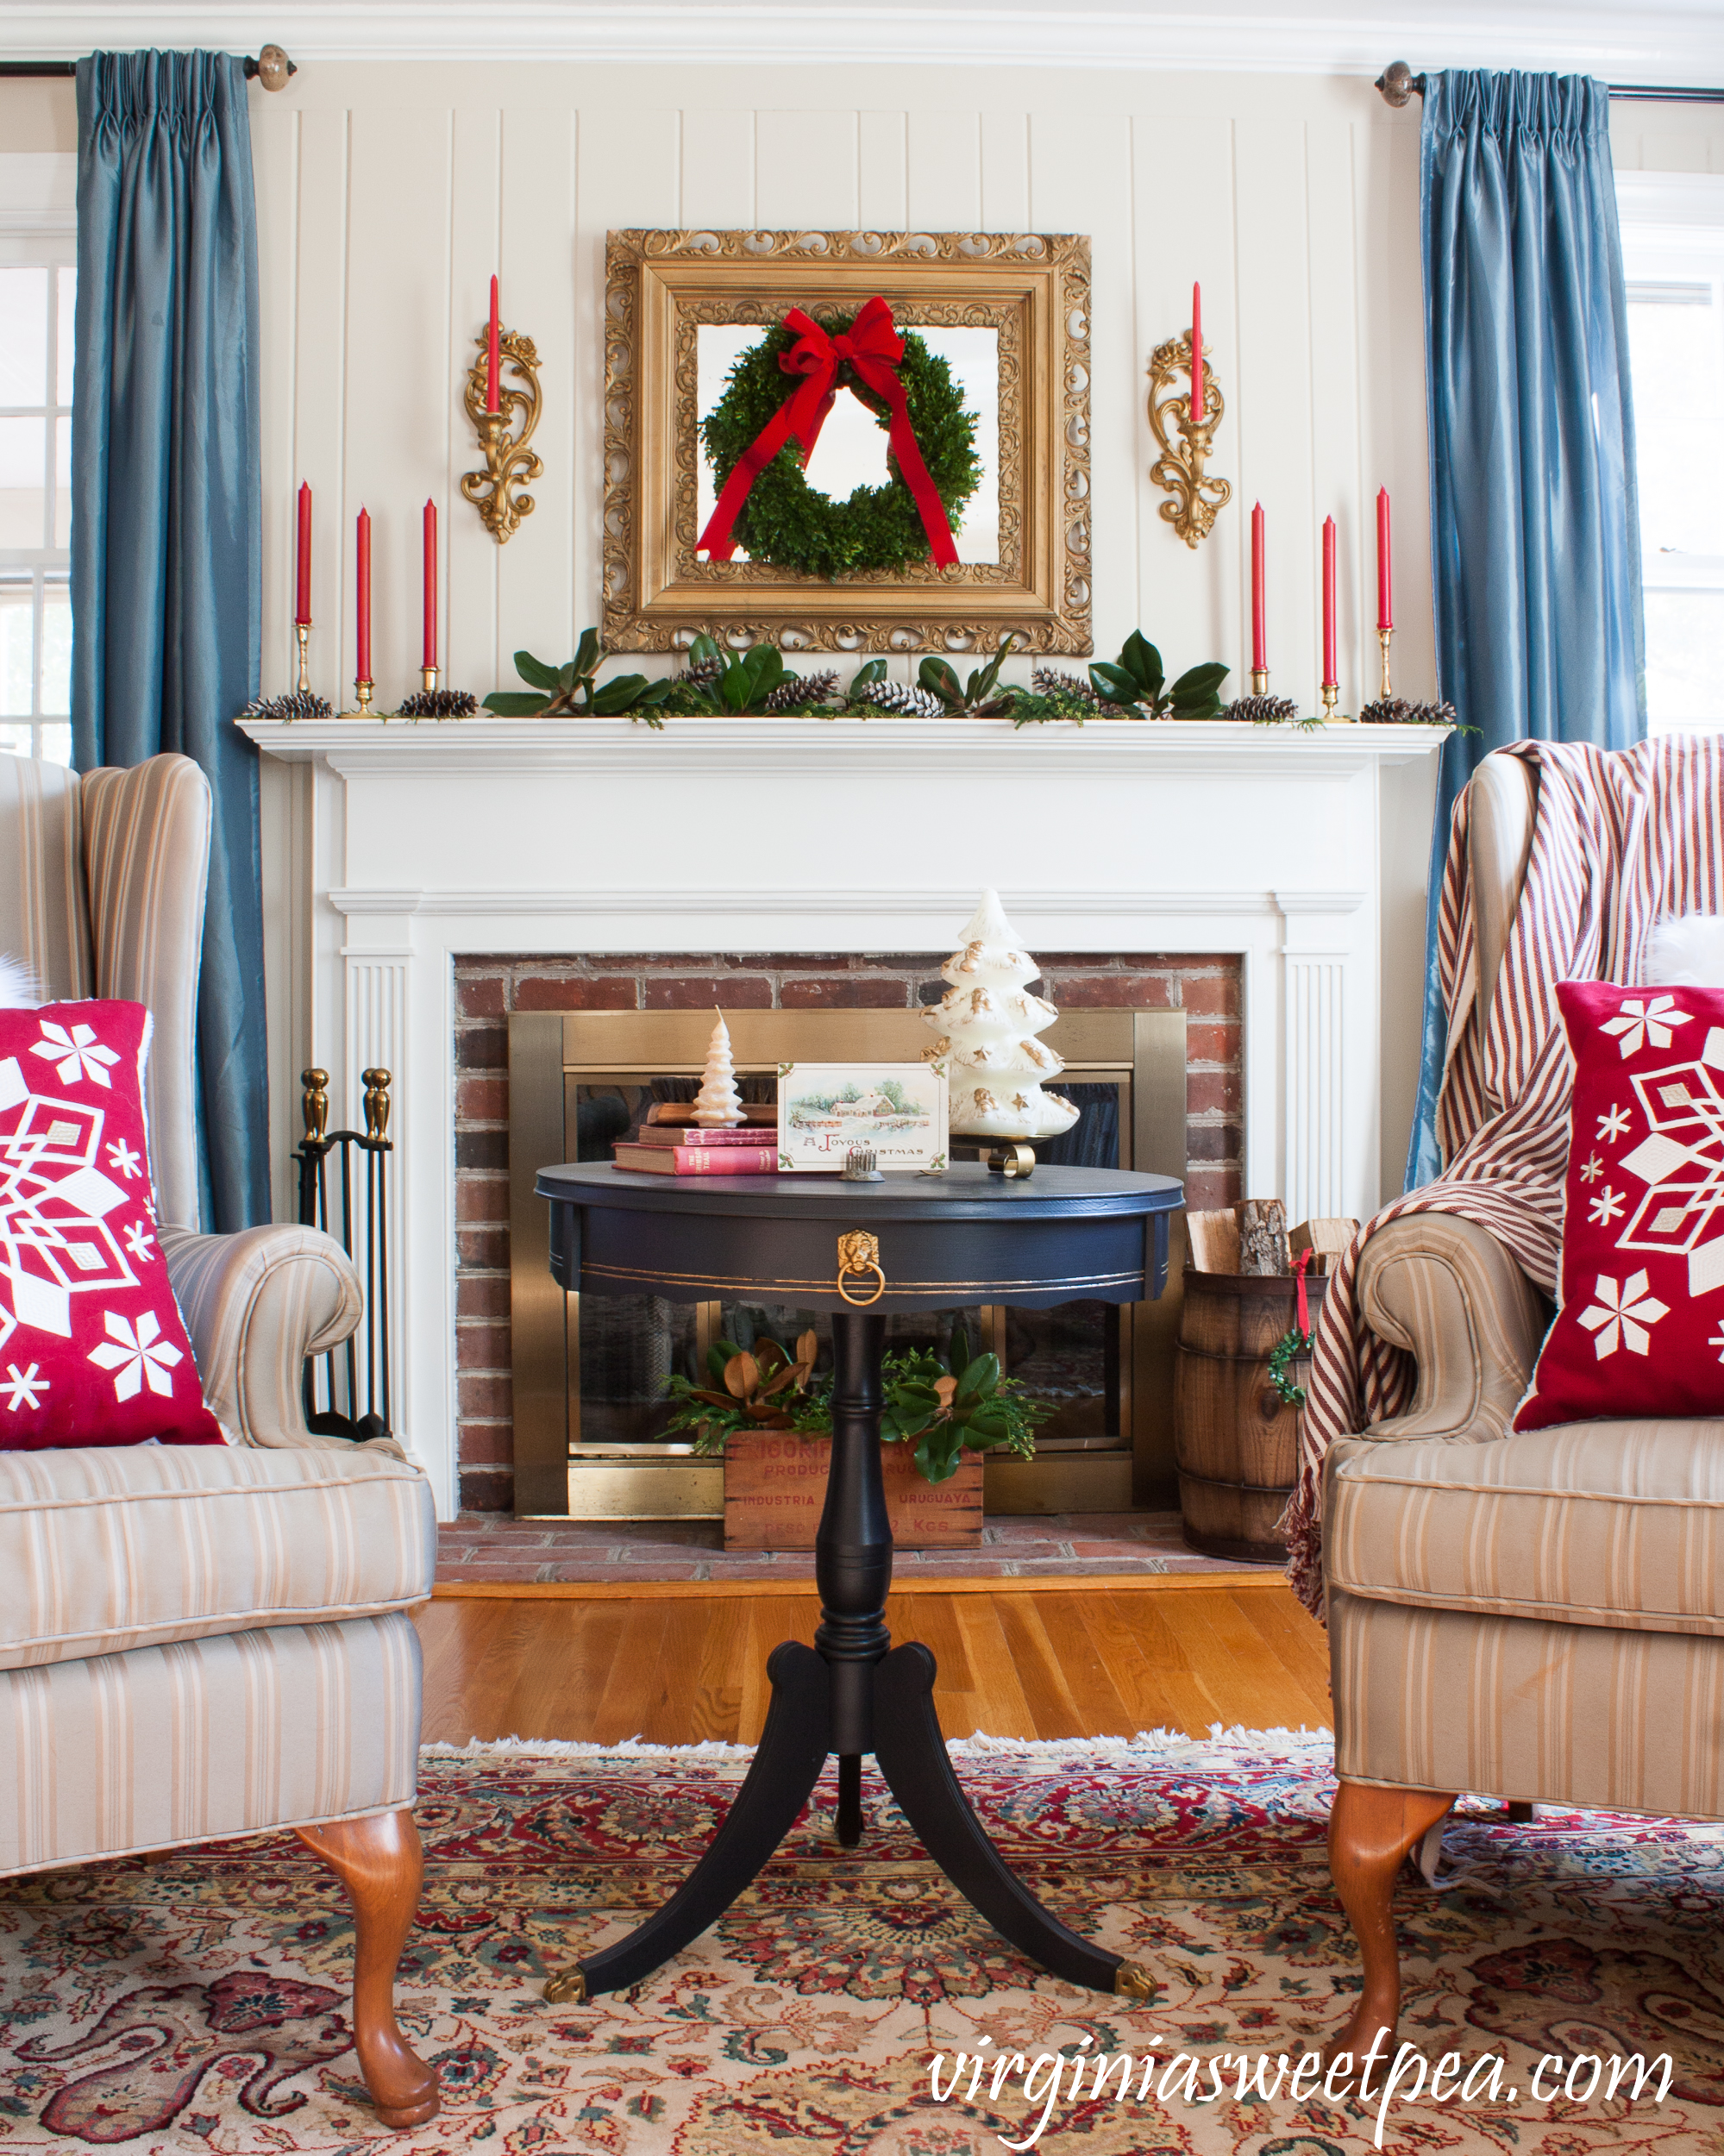 Christmas Tour of a home decorated for Christmas in a traditional southern style. #christmas #christmasdecor #christmasdecorations #vintagechristmas